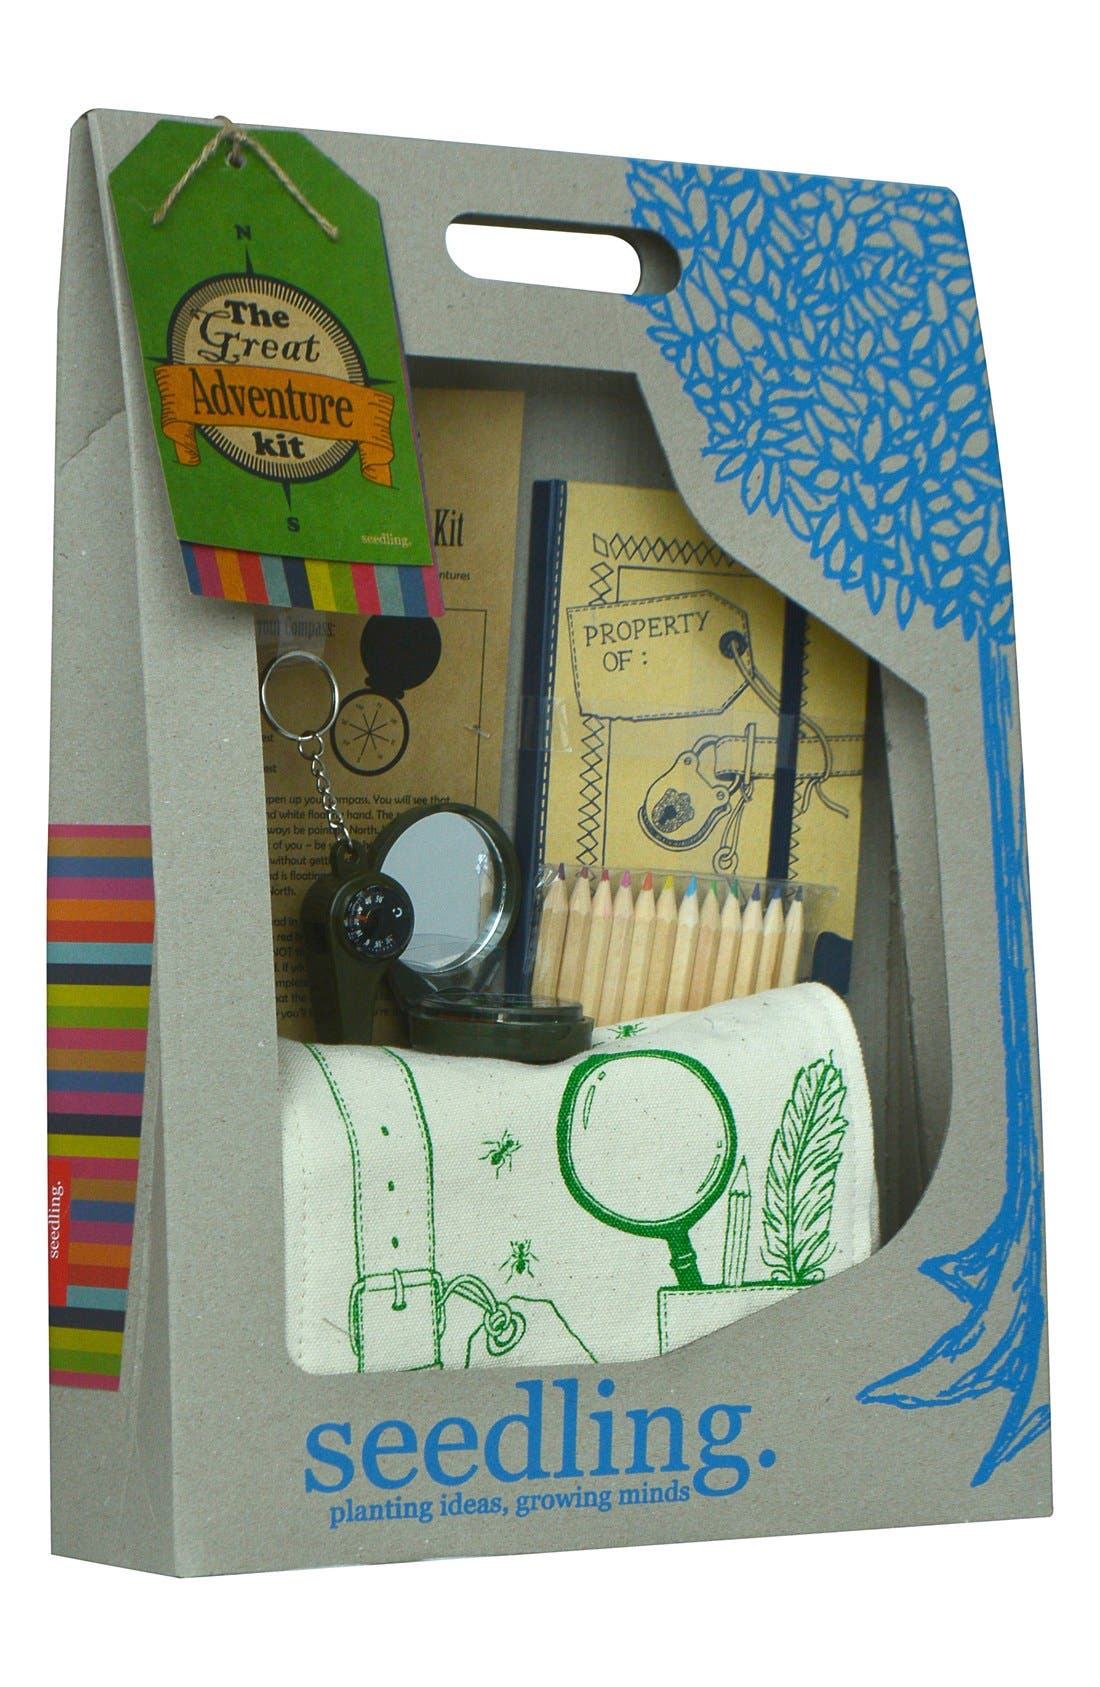 seedling 'The Great Adventure' Kit